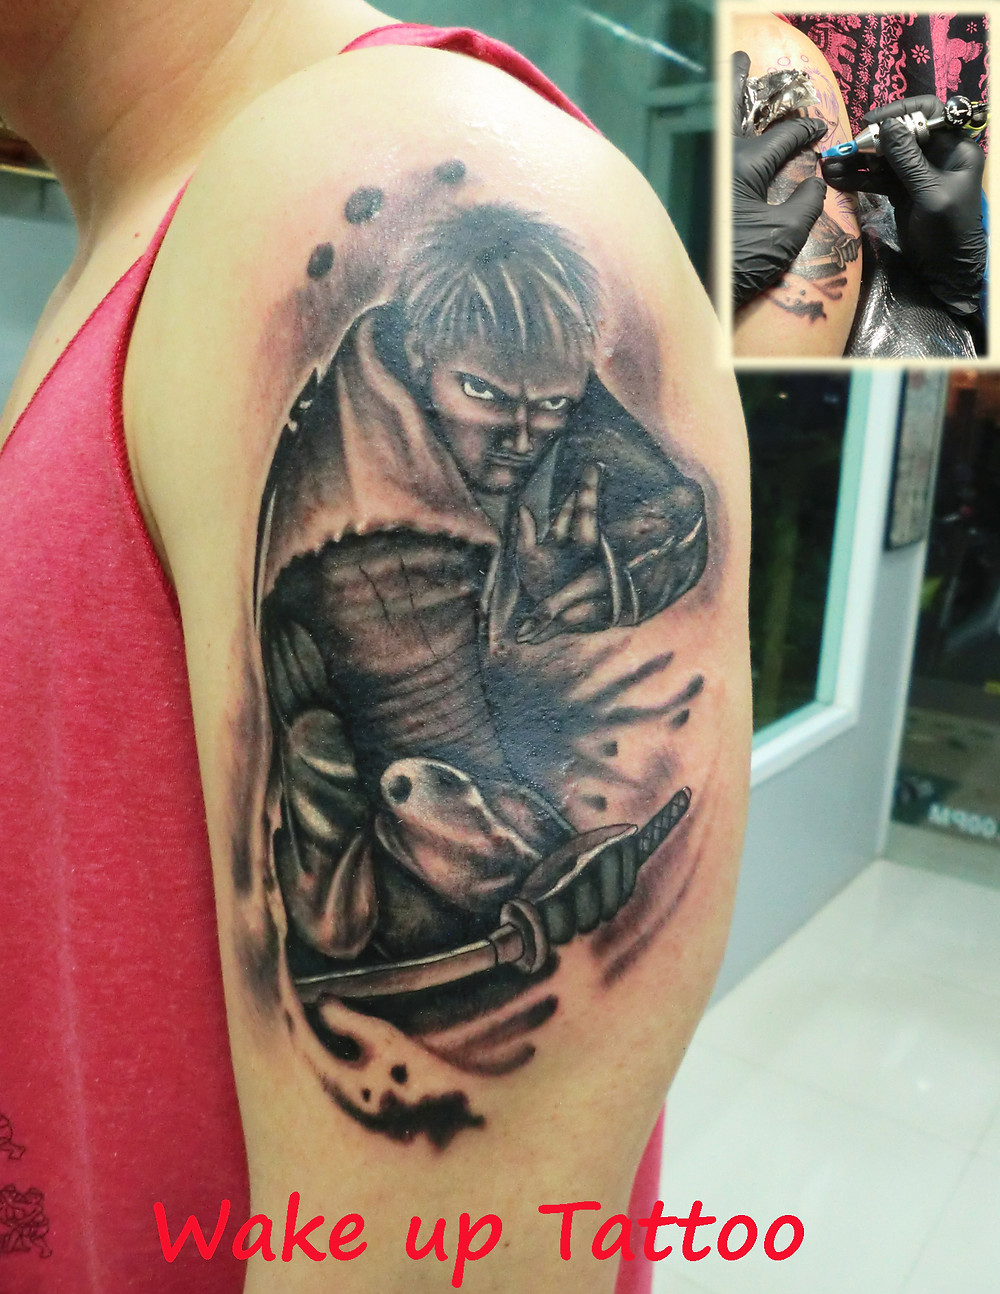 Ninjya tattoo by Wake up Tattoo Phuket